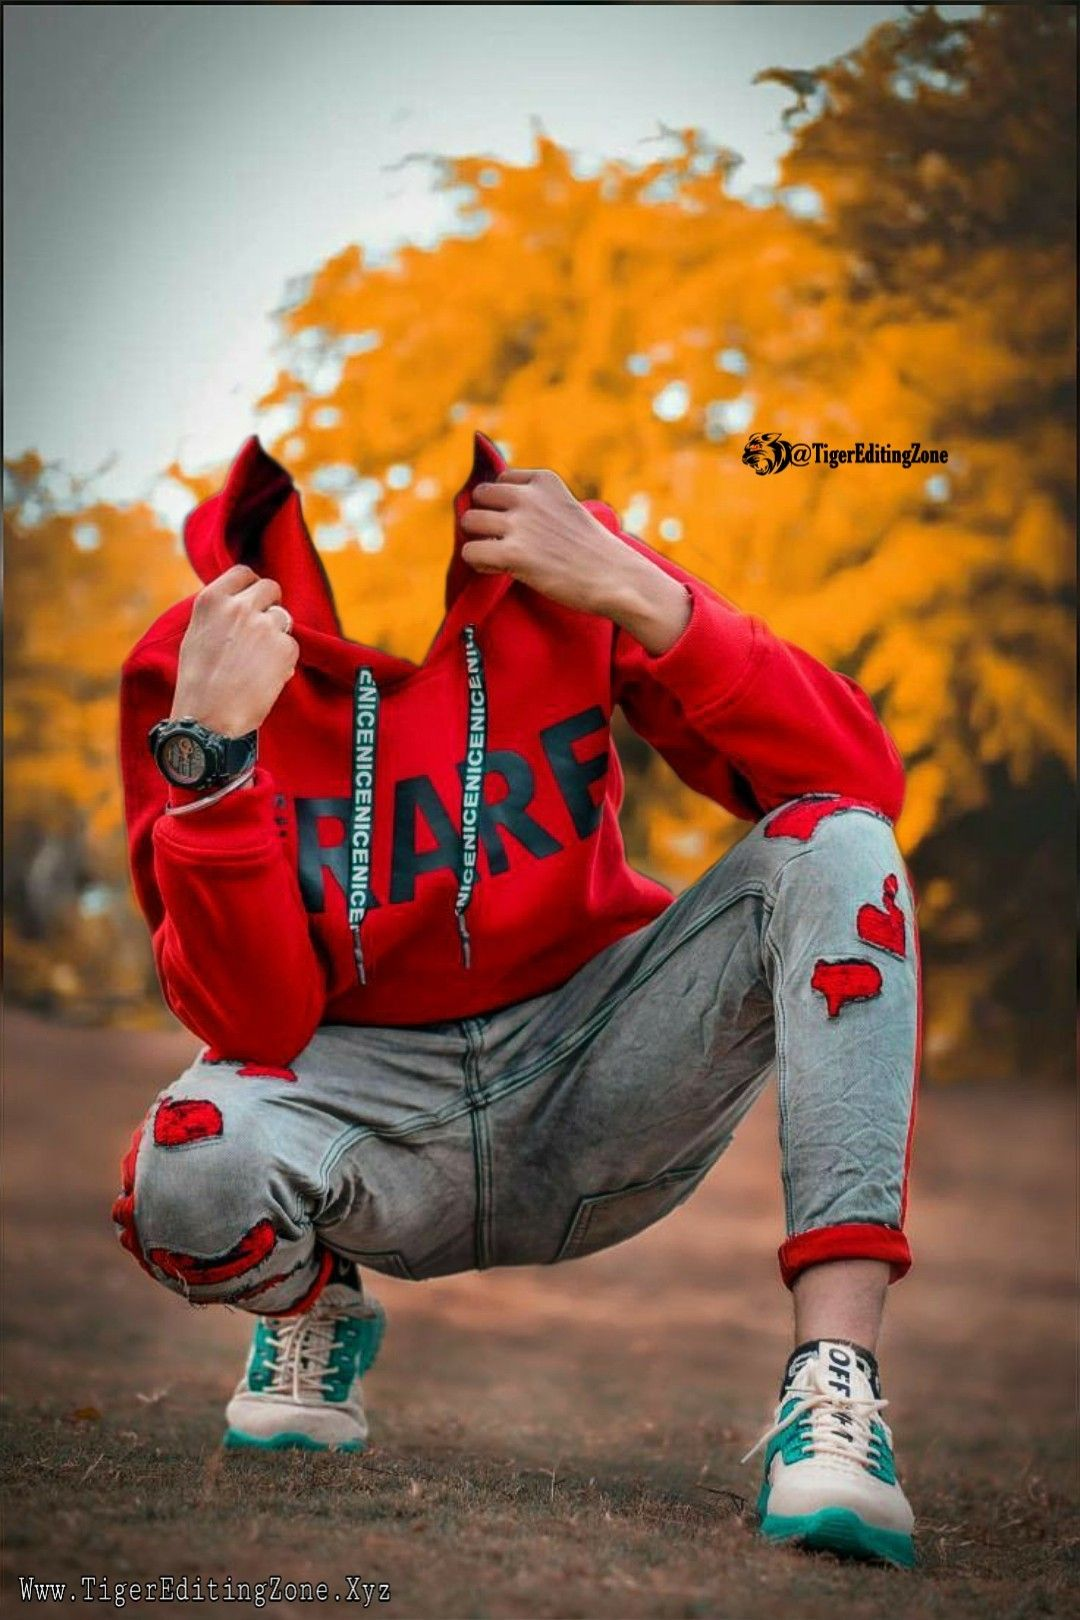 500 Cute Boy Photo Editing Background Hd 2020 Vijay Maher Background Hd Cute Boy Photo Photo Poses For Boy Black Background Photography